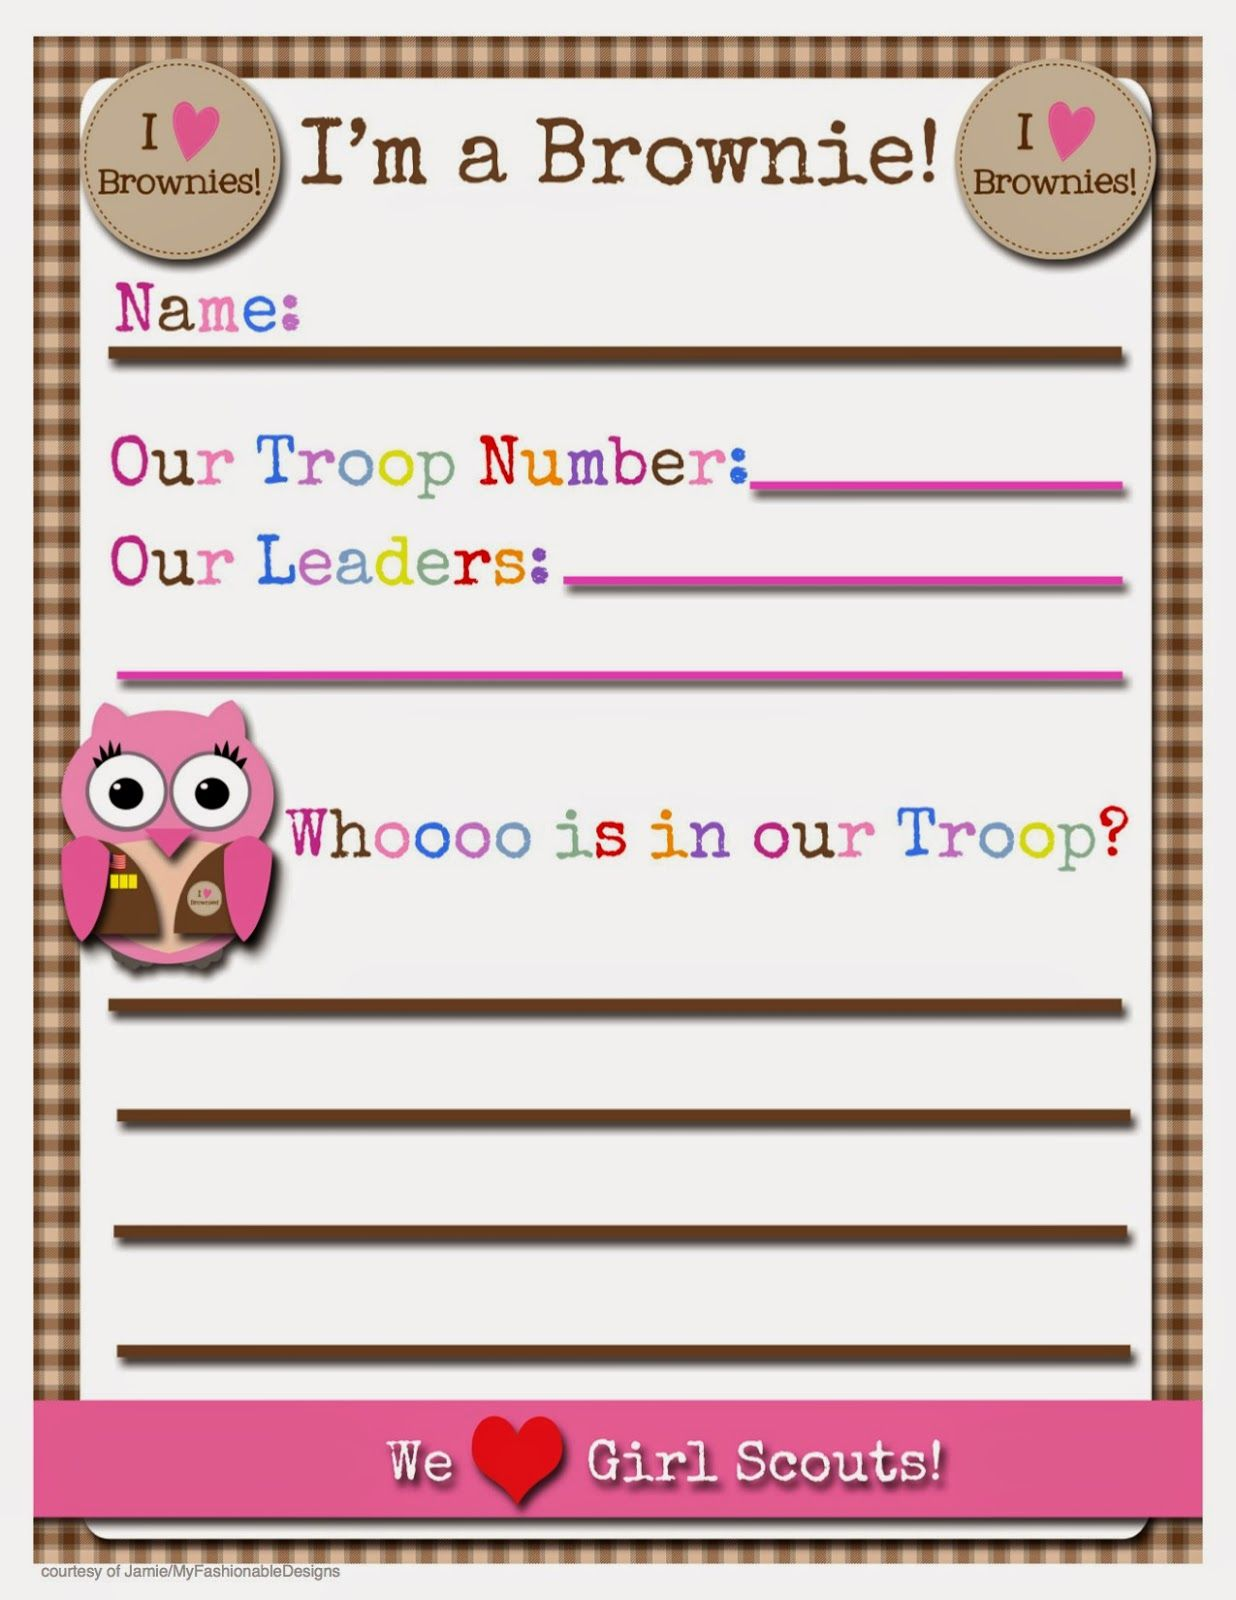 Girl Scout Brownie Newsletter Template Printable With Edita